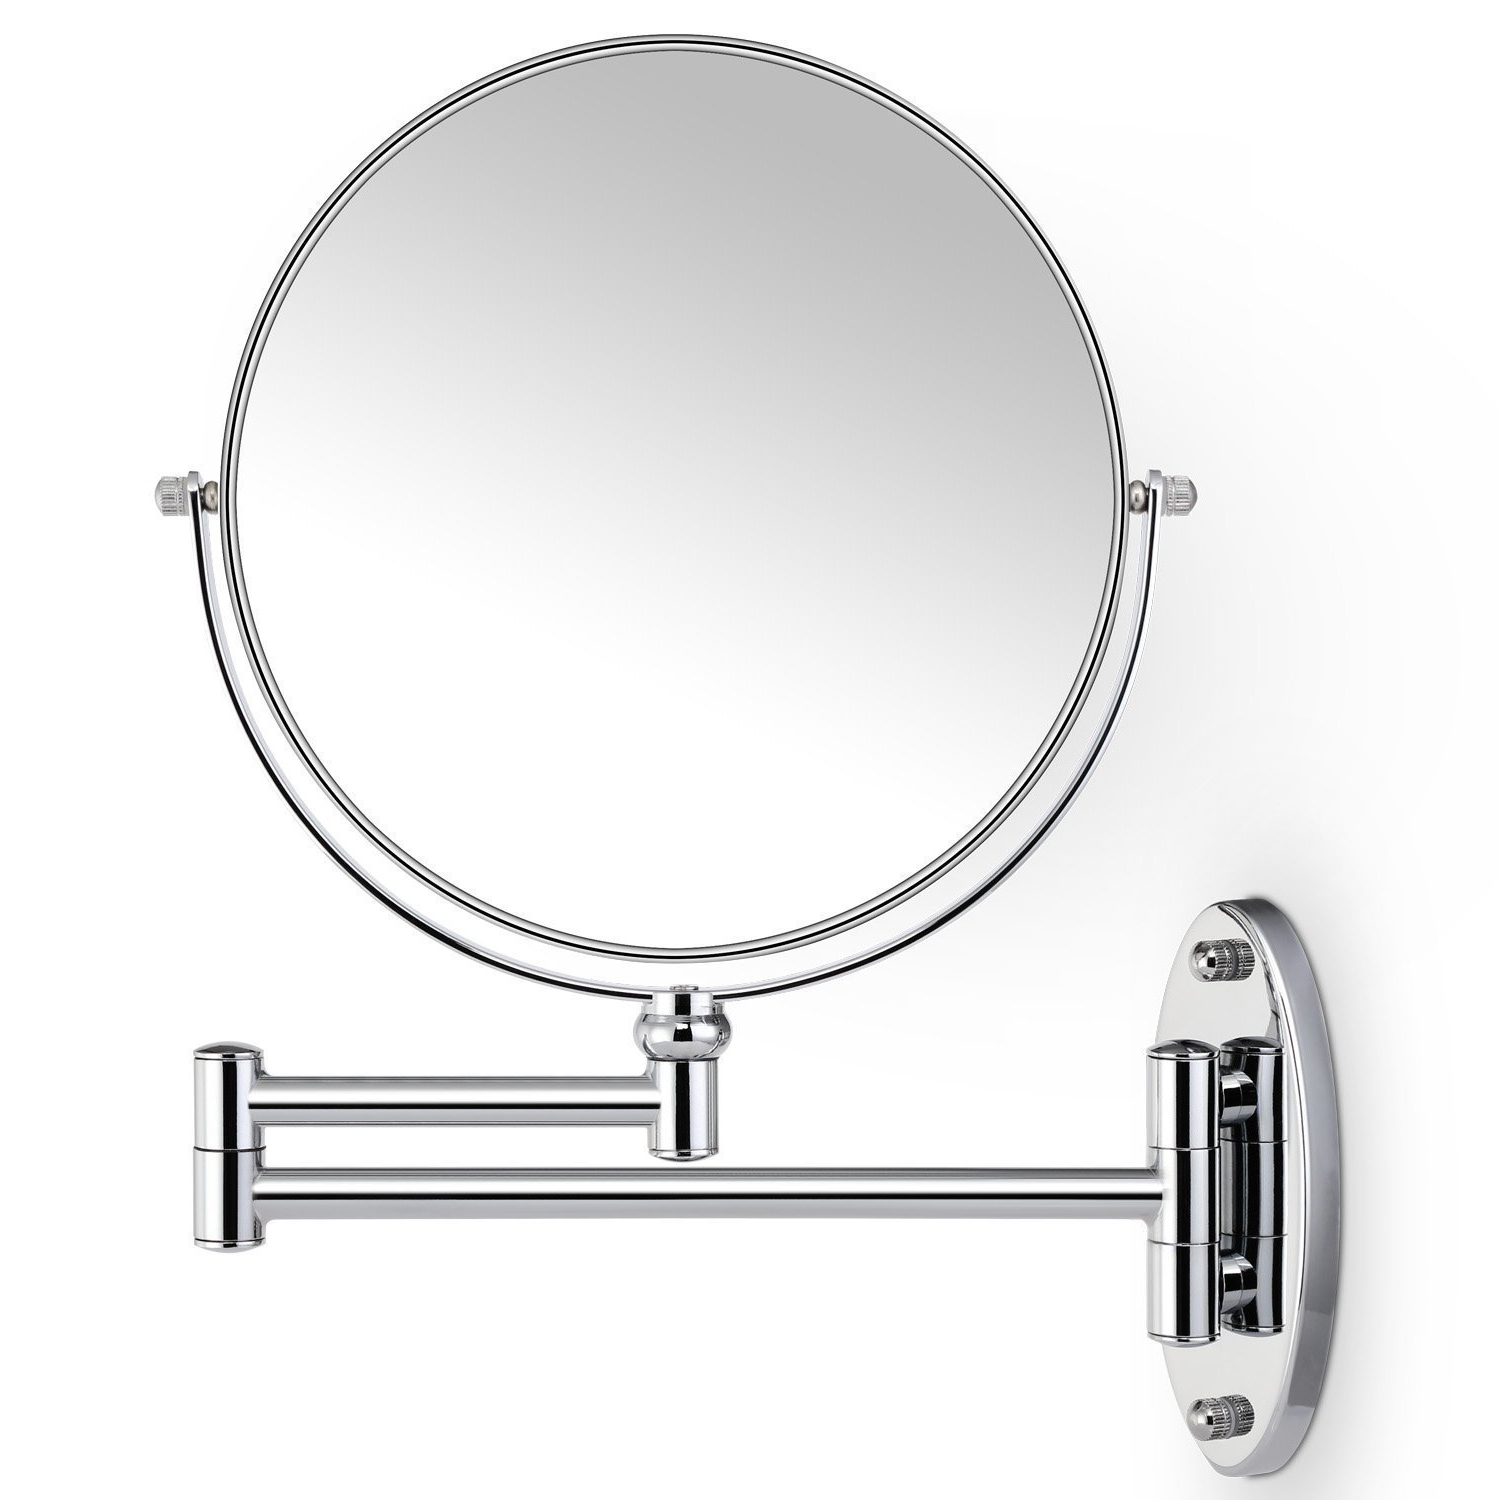 Popular Magnified Wall Mirrors Pertaining To Cosprof Bathroom Mirror 10x/1x Magnification Double Sided 8 Inch Wall Mounted Vanity Magnifying Mirror (View 6 of 20)